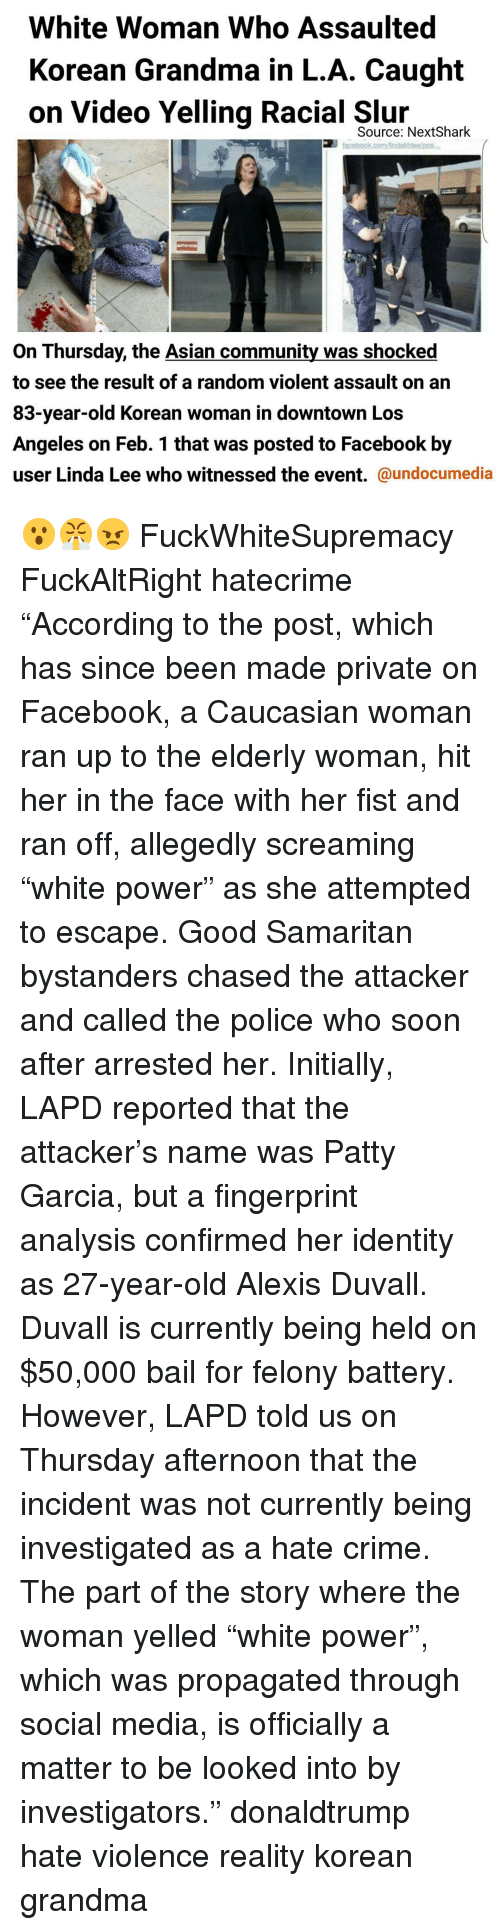 """Initialisms: White Woman Who Assaulted  Korean Grandma in L.A. Caught  on Video Yelling Racial Source: Next Shark  facebook comAndakhlealpos,  On Thursday, the Asian community was shocked  to see the result of a random violent assault on an  83-year-old Korean woman in downtown Los  Angeles on Feb. 1 that was posted to Facebook by  user Linda Lee who witnessed the event.  @undocumedia 😮😤😠 FuckWhiteSupremacy FuckAltRight hatecrime """"According to the post, which has since been made private on Facebook, a Caucasian woman ran up to the elderly woman, hit her in the face with her fist and ran off, allegedly screaming """"white power"""" as she attempted to escape. Good Samaritan bystanders chased the attacker and called the police who soon after arrested her. Initially, LAPD reported that the attacker's name was Patty Garcia, but a fingerprint analysis confirmed her identity as 27-year-old Alexis Duvall. Duvall is currently being held on $50,000 bail for felony battery. However, LAPD told us on Thursday afternoon that the incident was not currently being investigated as a hate crime. The part of the story where the woman yelled """"white power"""", which was propagated through social media, is officially a matter to be looked into by investigators."""" donaldtrump hate violence reality korean grandma"""